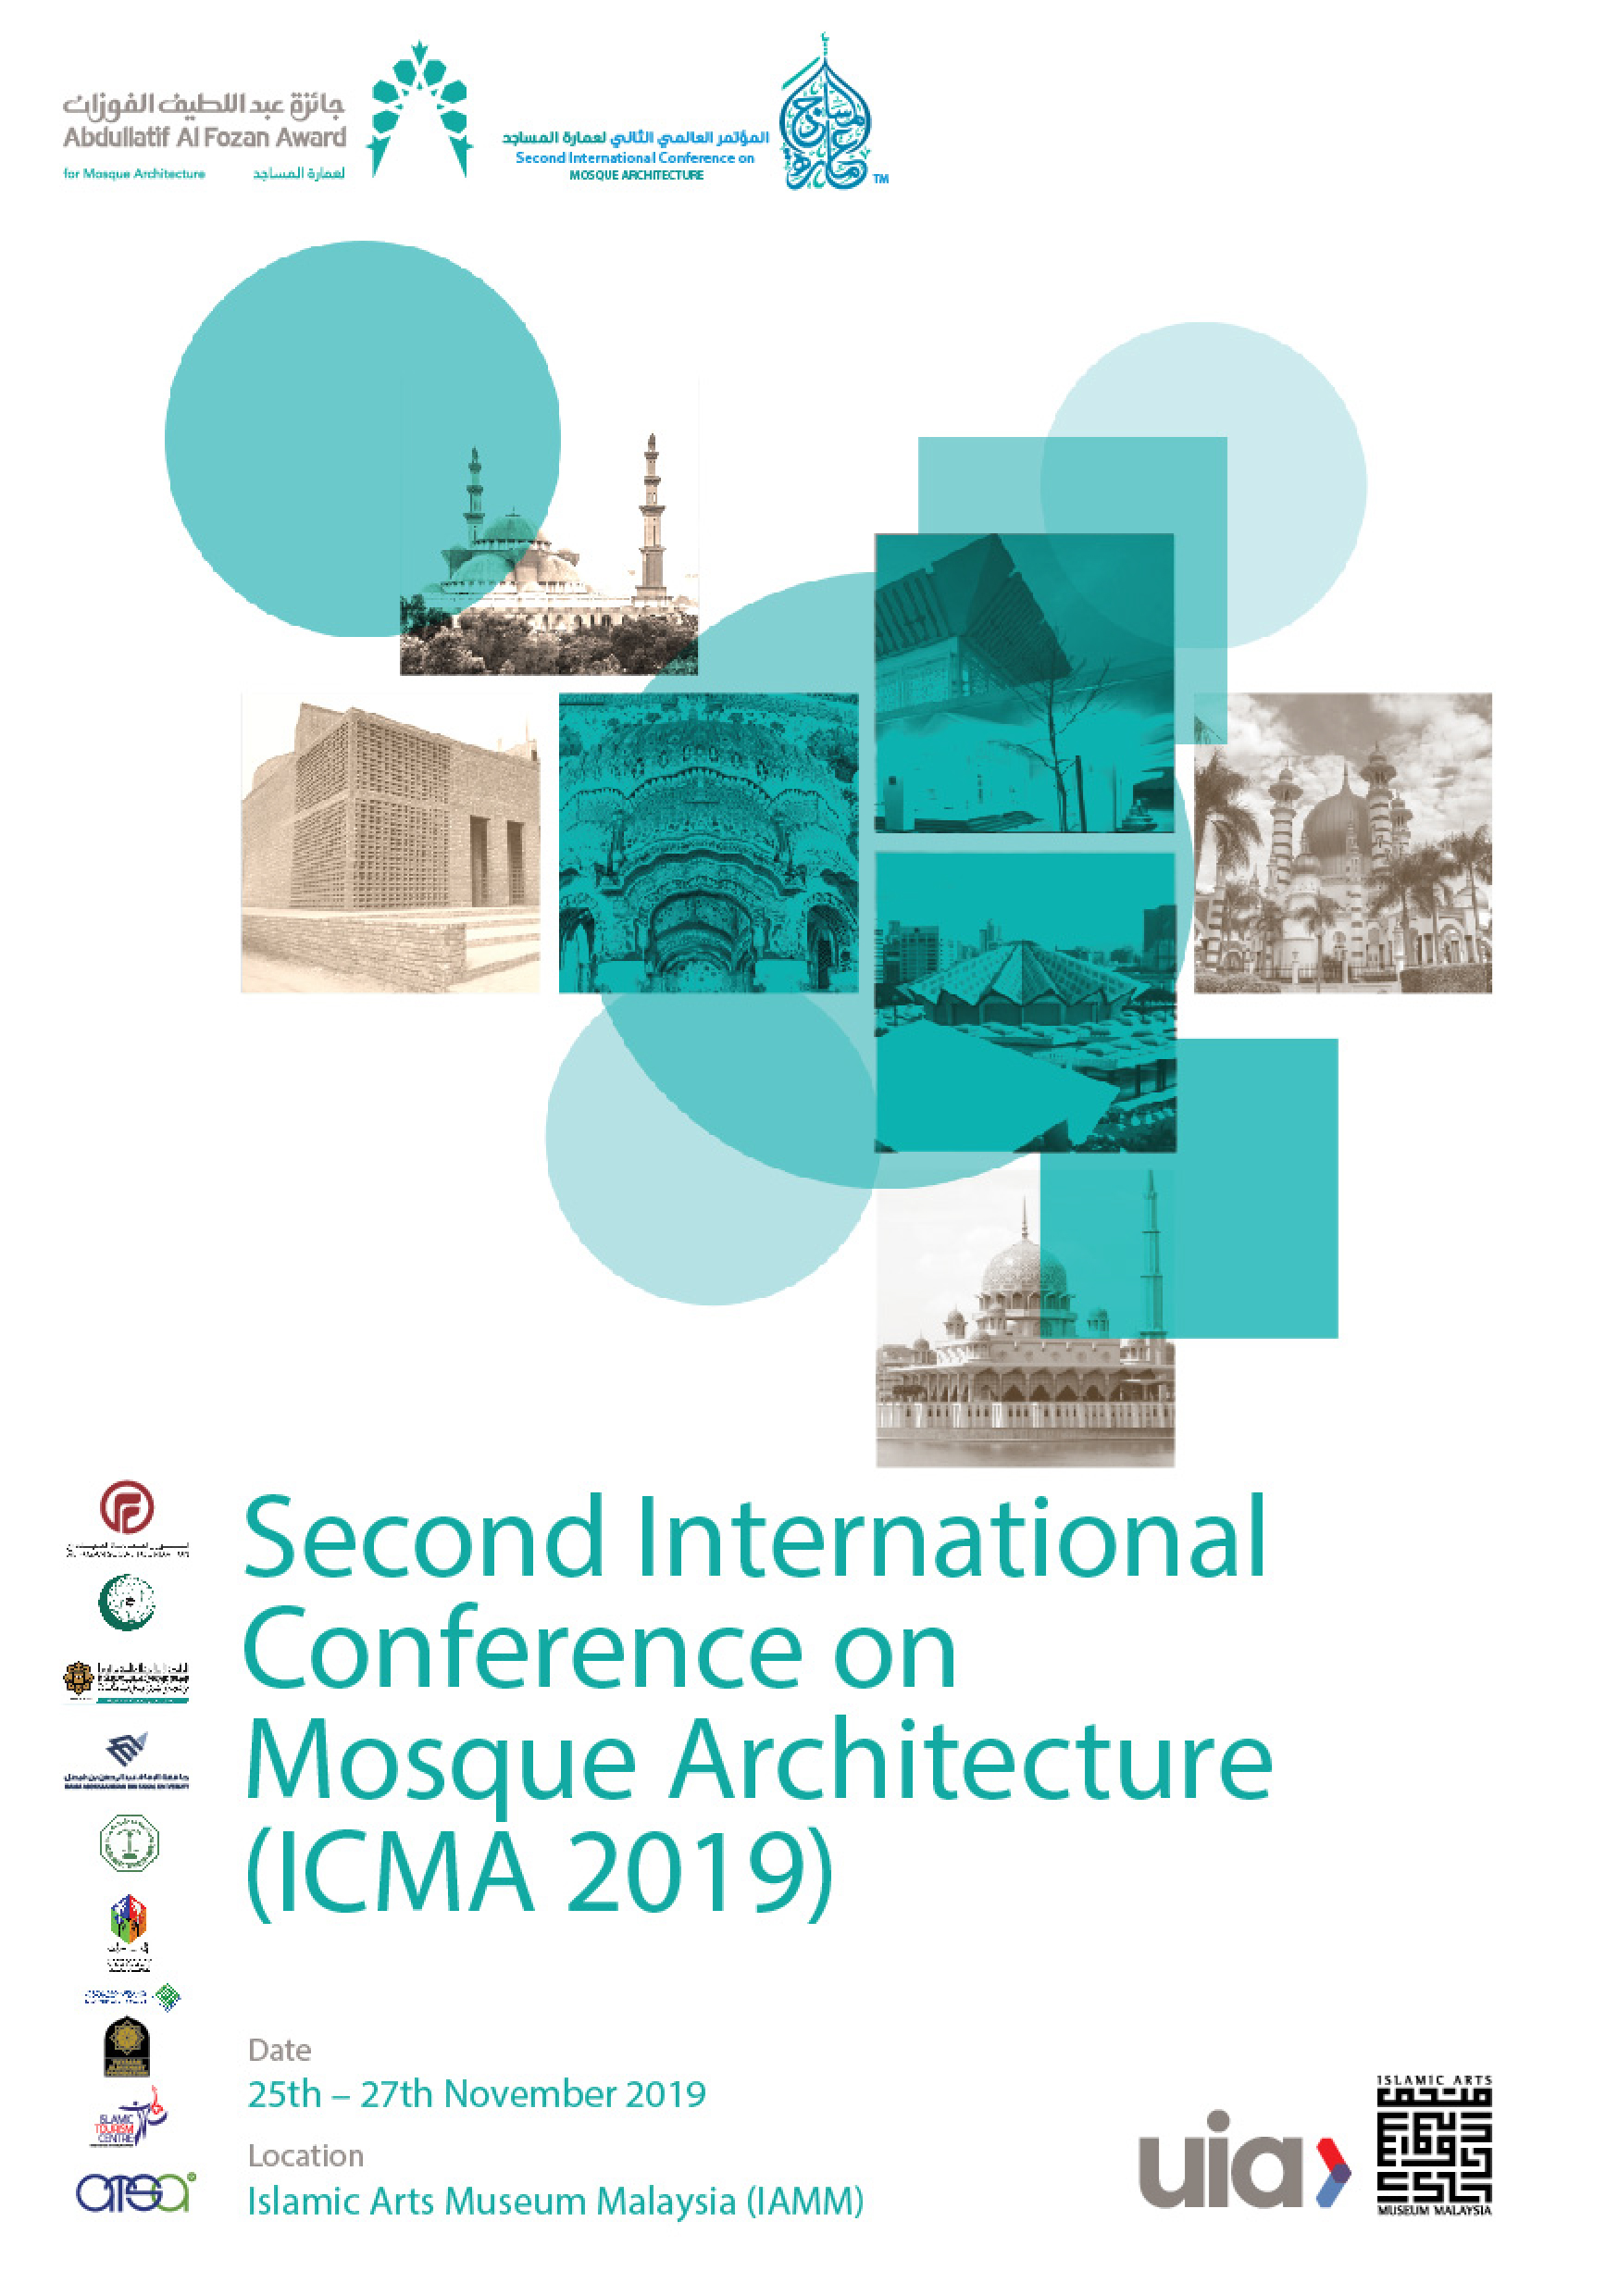 The 2nd International Conference on Mosque Architecture (ICMA 2019)